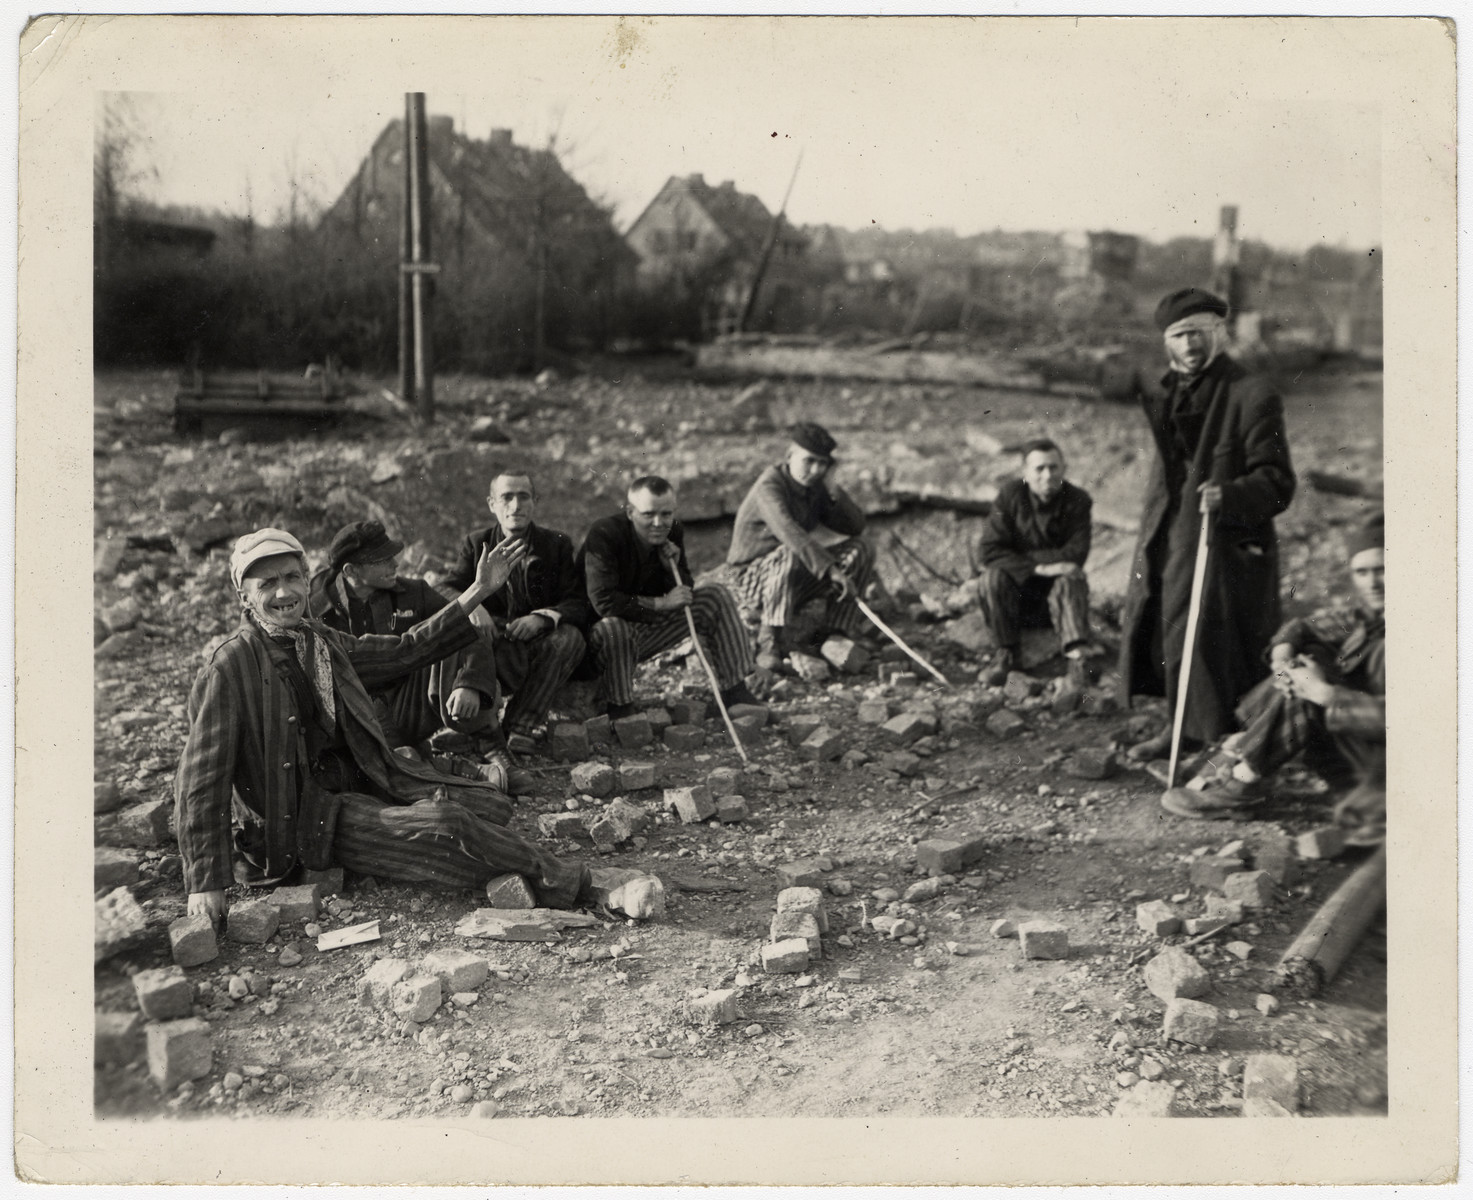 Survivors sit amidst the rubble of the Nordhausen concentration camp.